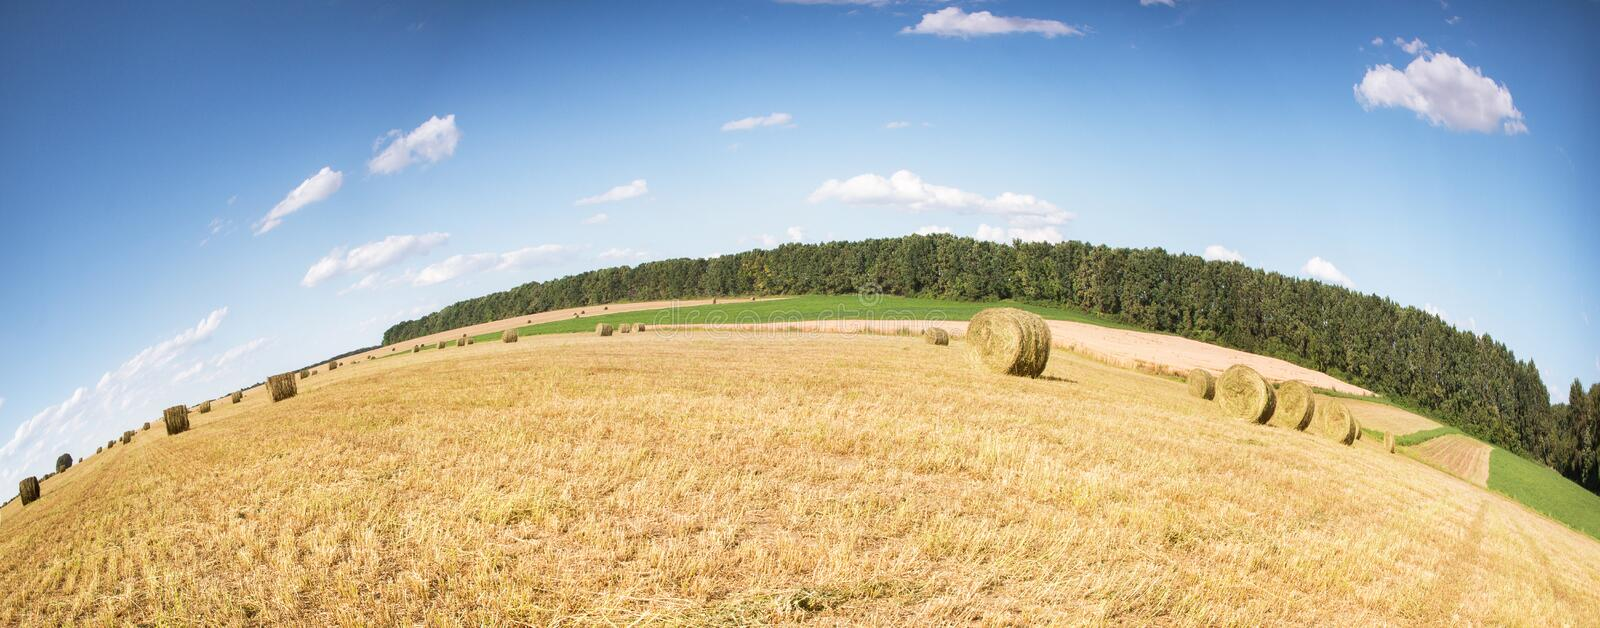 Field with bales of straw. Bales of straw on the mown pole.Goluboe sky with clouds royalty free stock photo